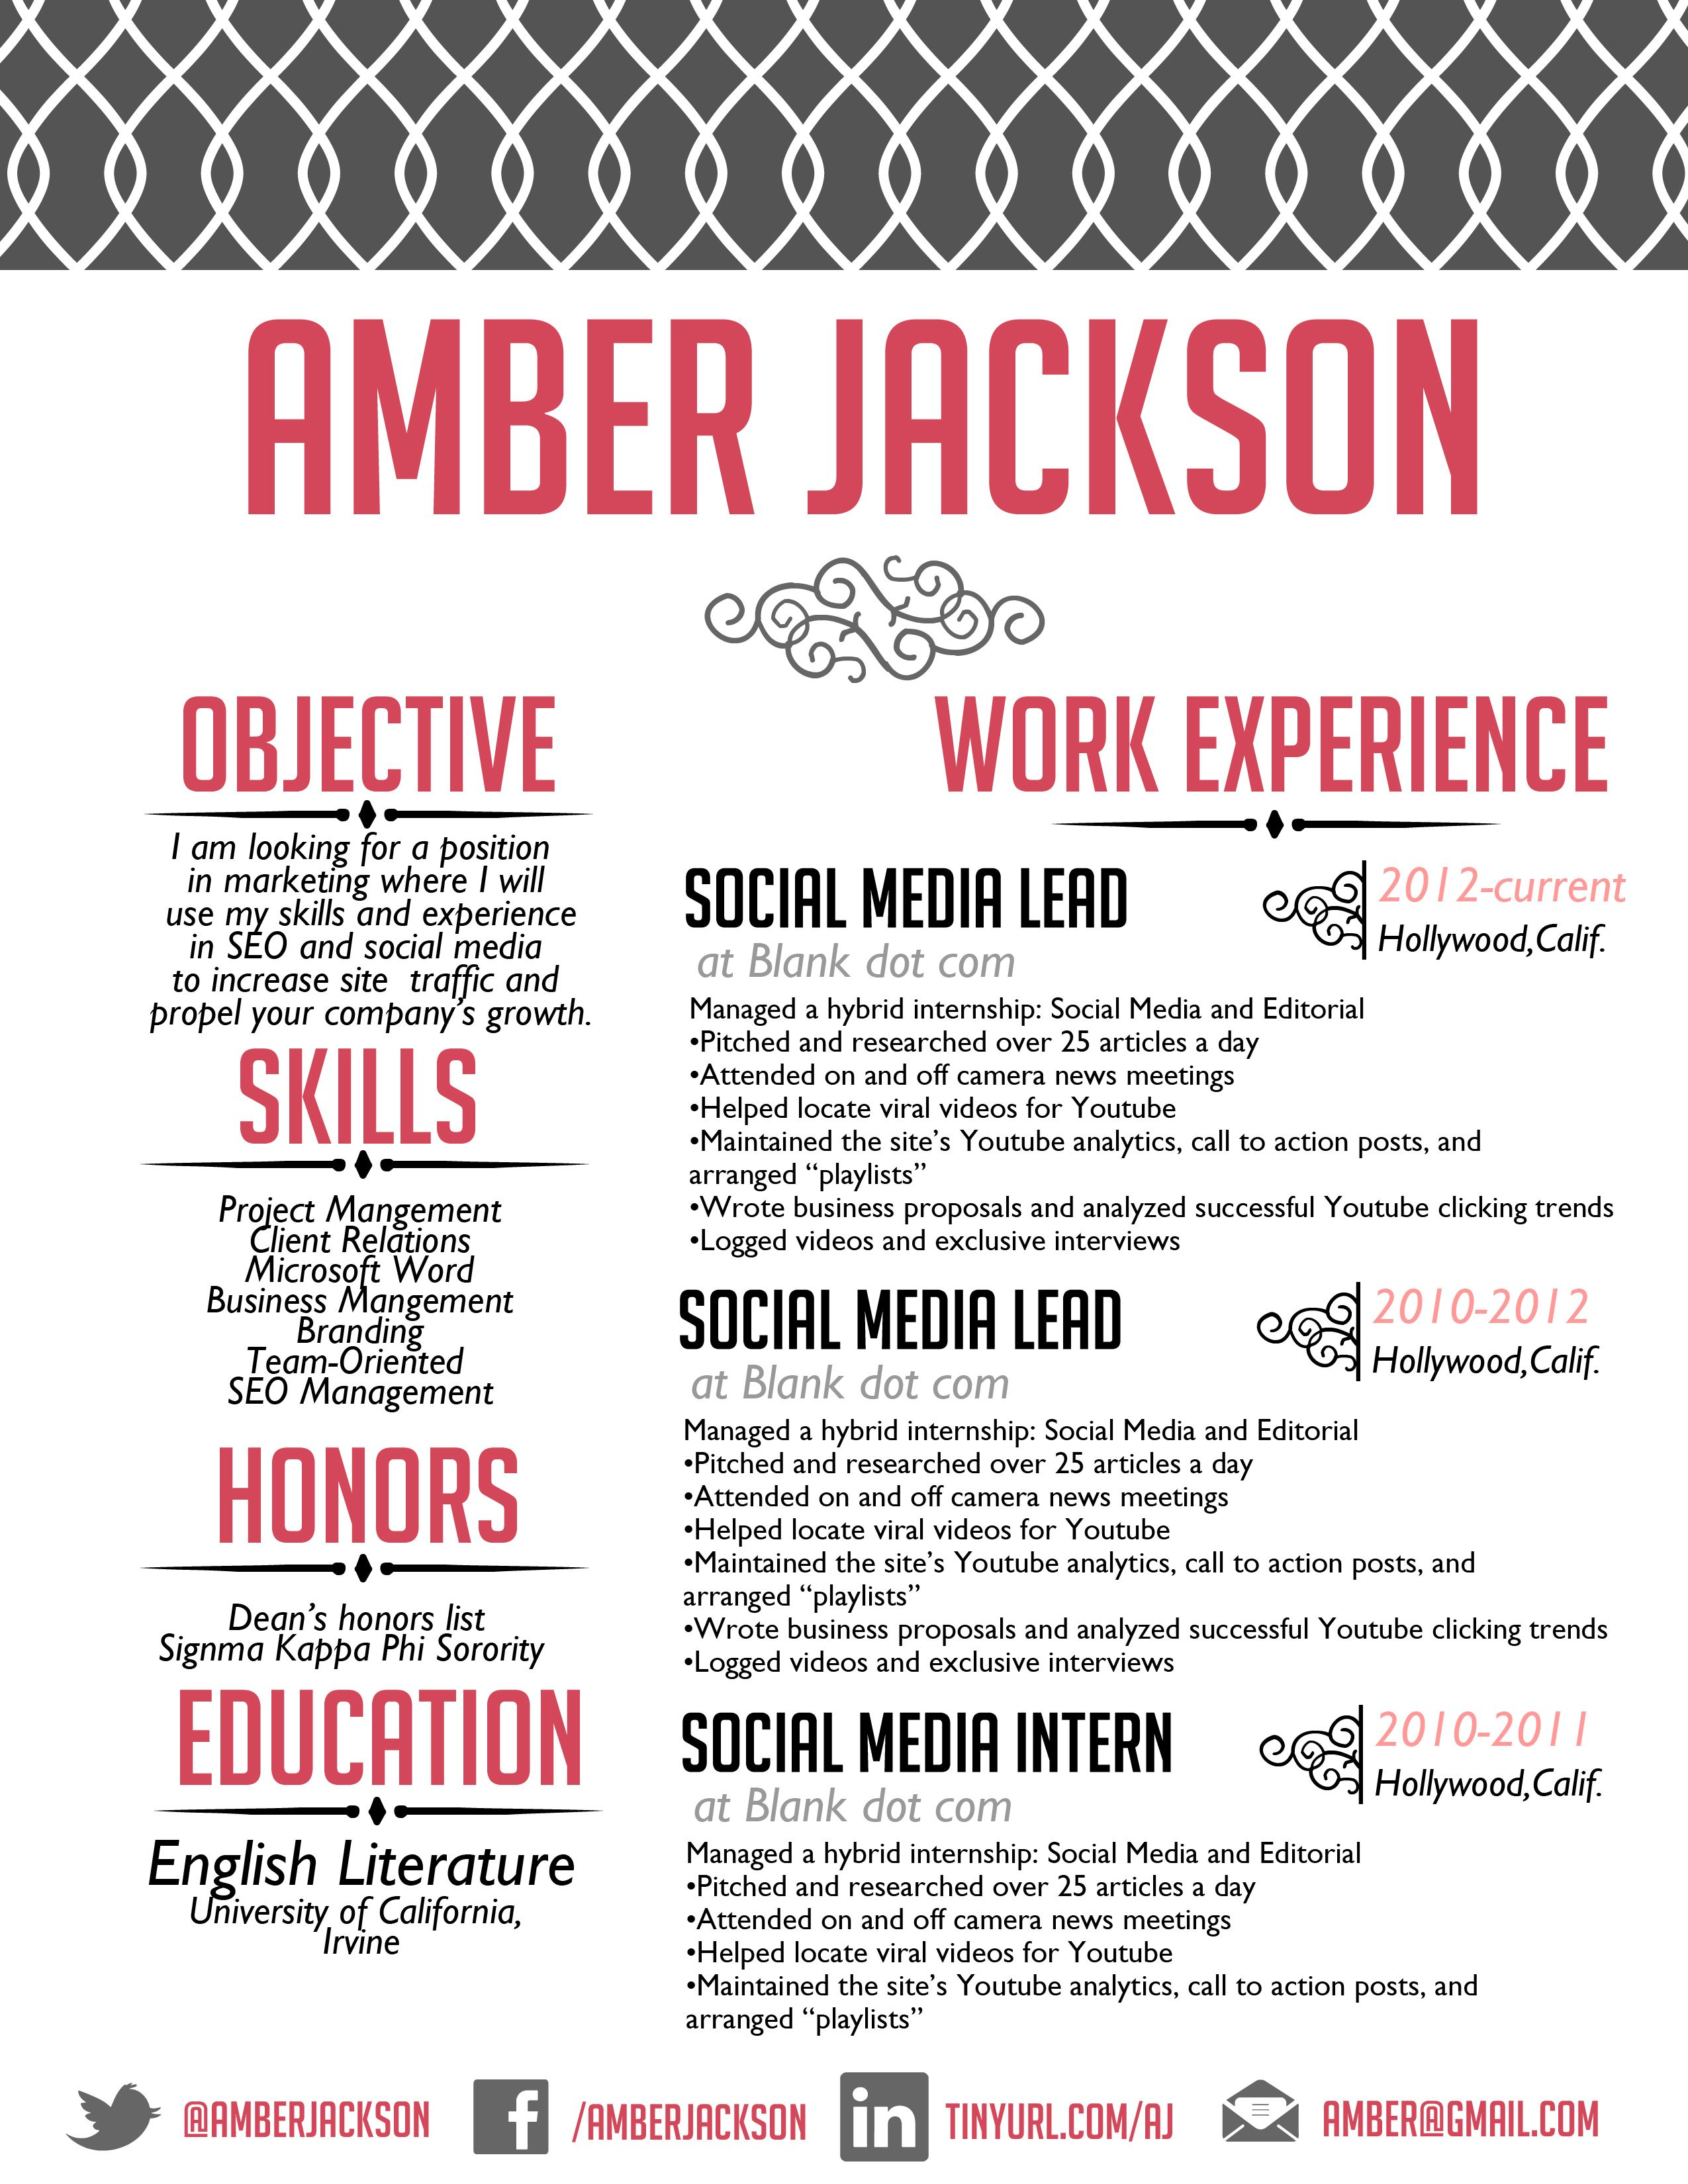 the amber jackson resume design